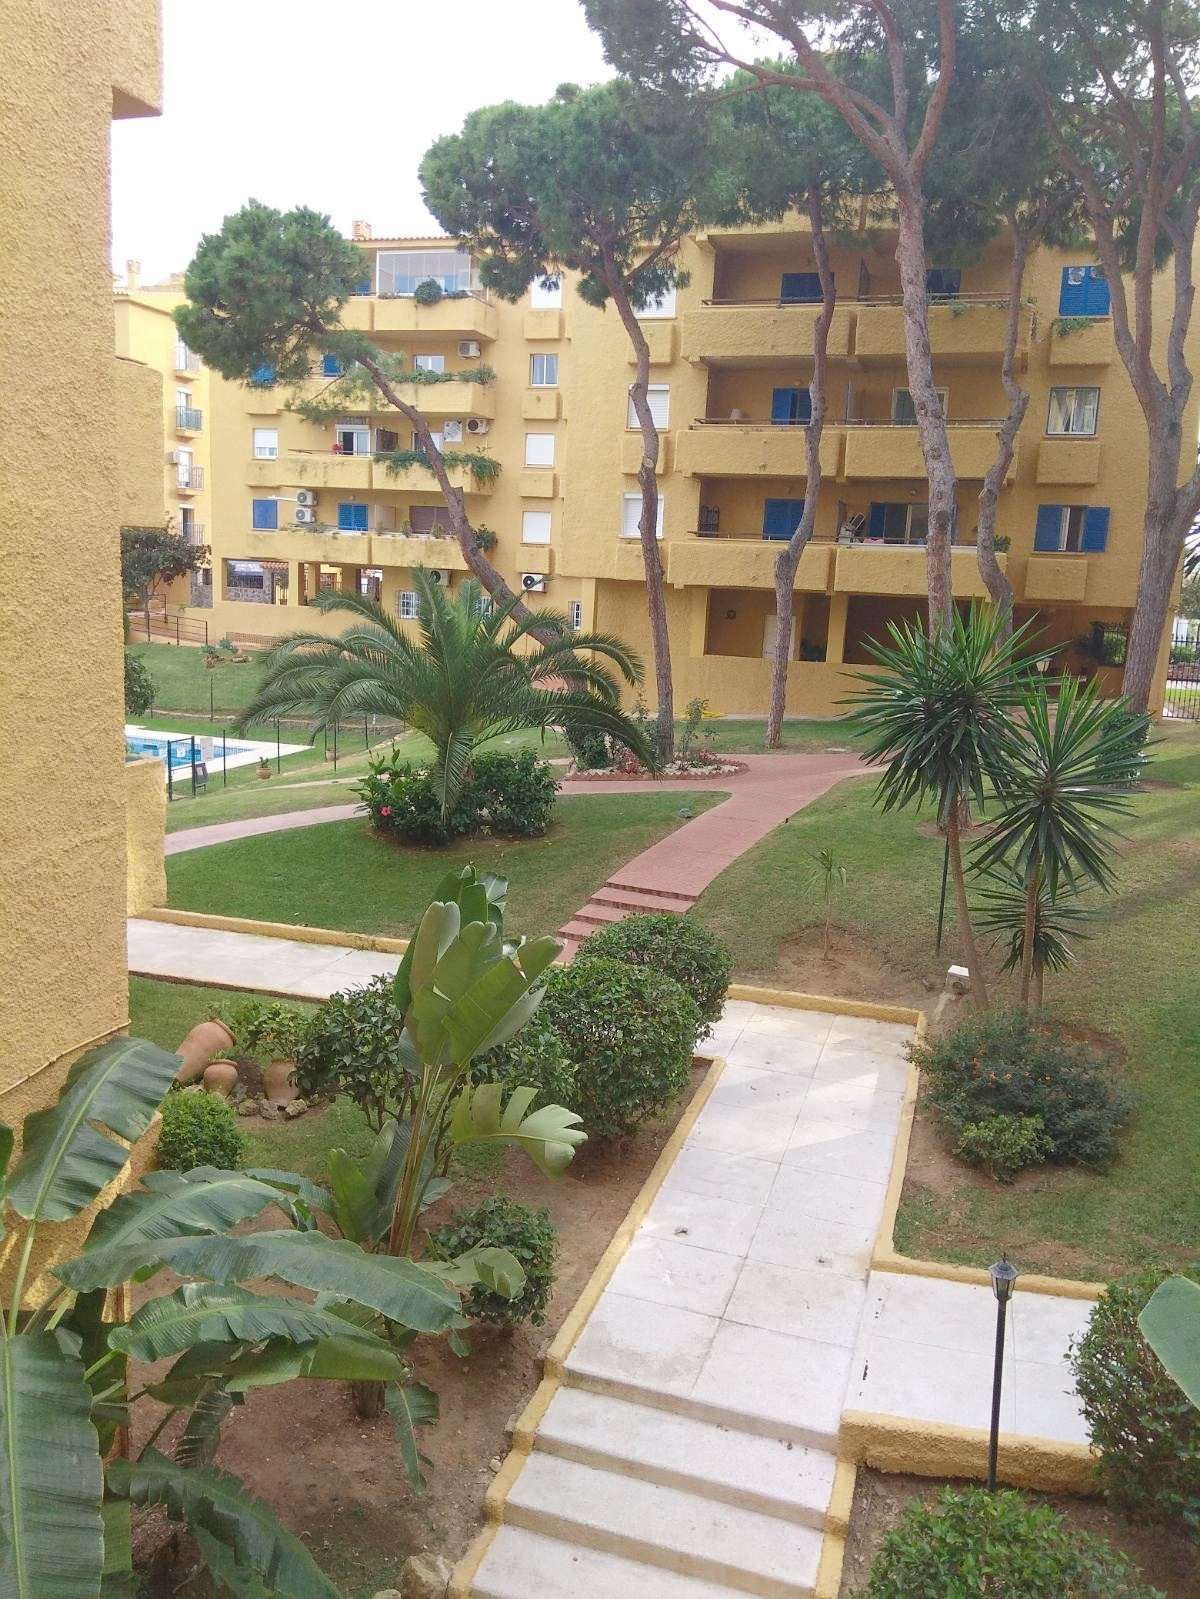 R3034535: Apartment for sale in Calahonda